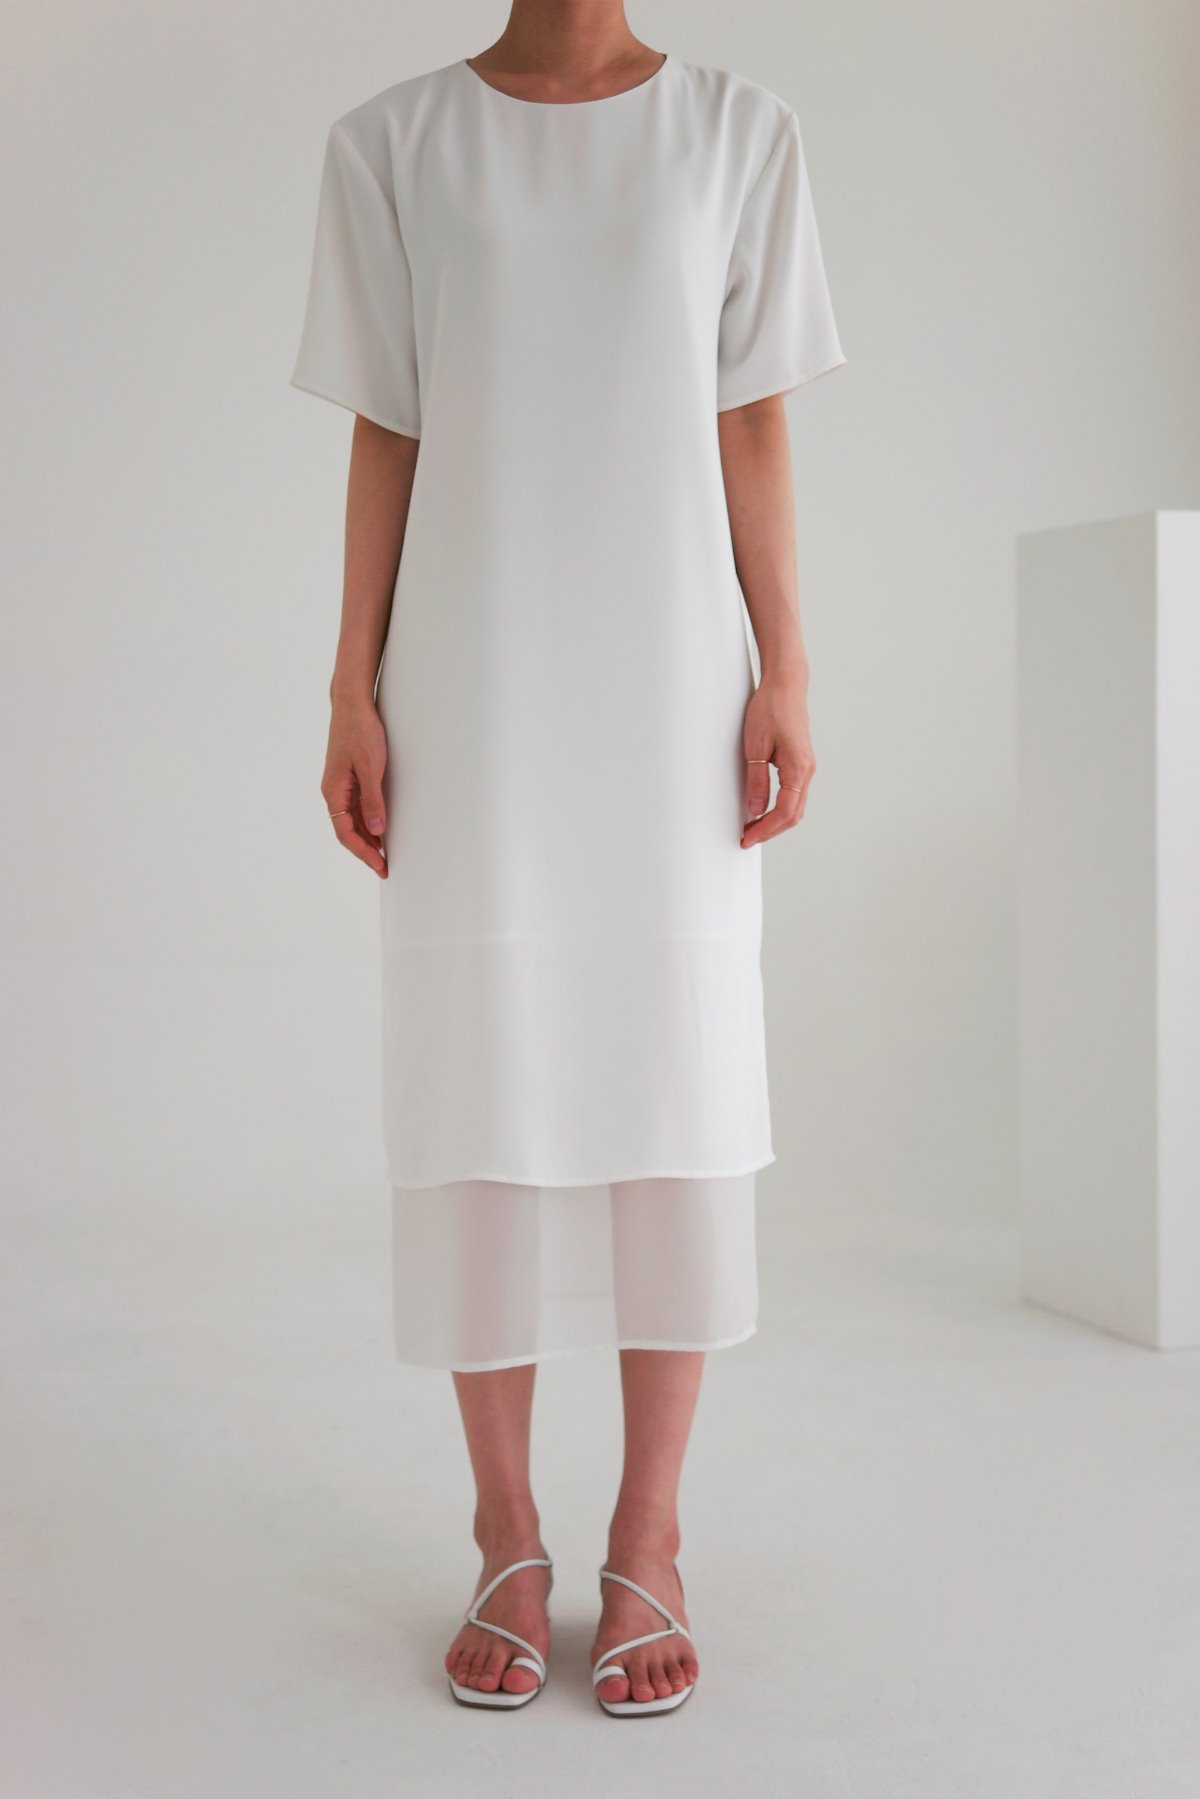 anthese claro layered dress, white (30% discount)